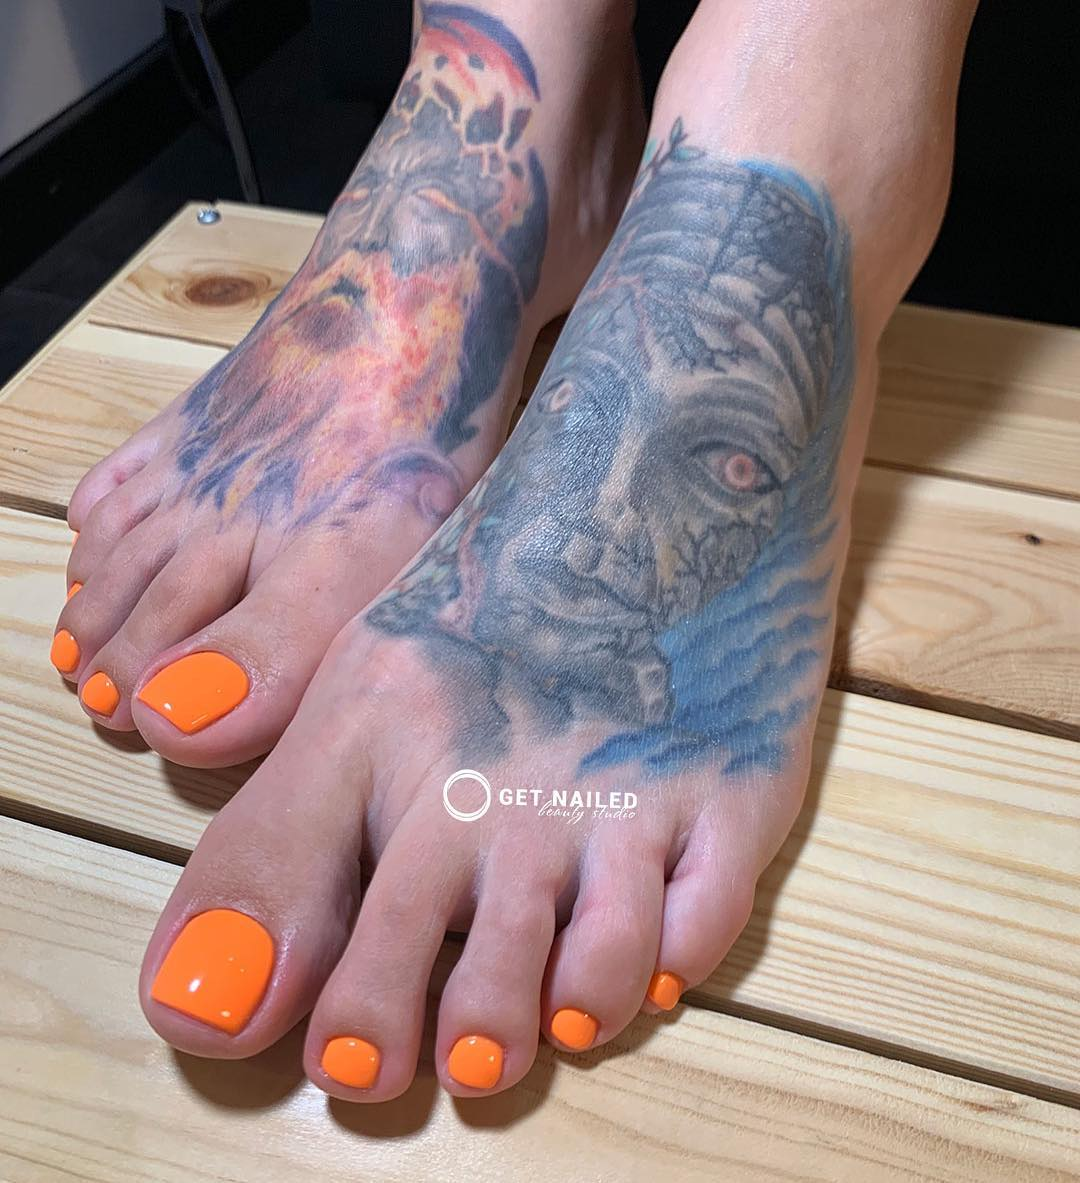 Sweet orange  Pedicure done by Margarita You can book your appointment on getnailed.co, through DM, WhatsApp +34 680 576 151 or simply by leaving a comment ..luxiogel